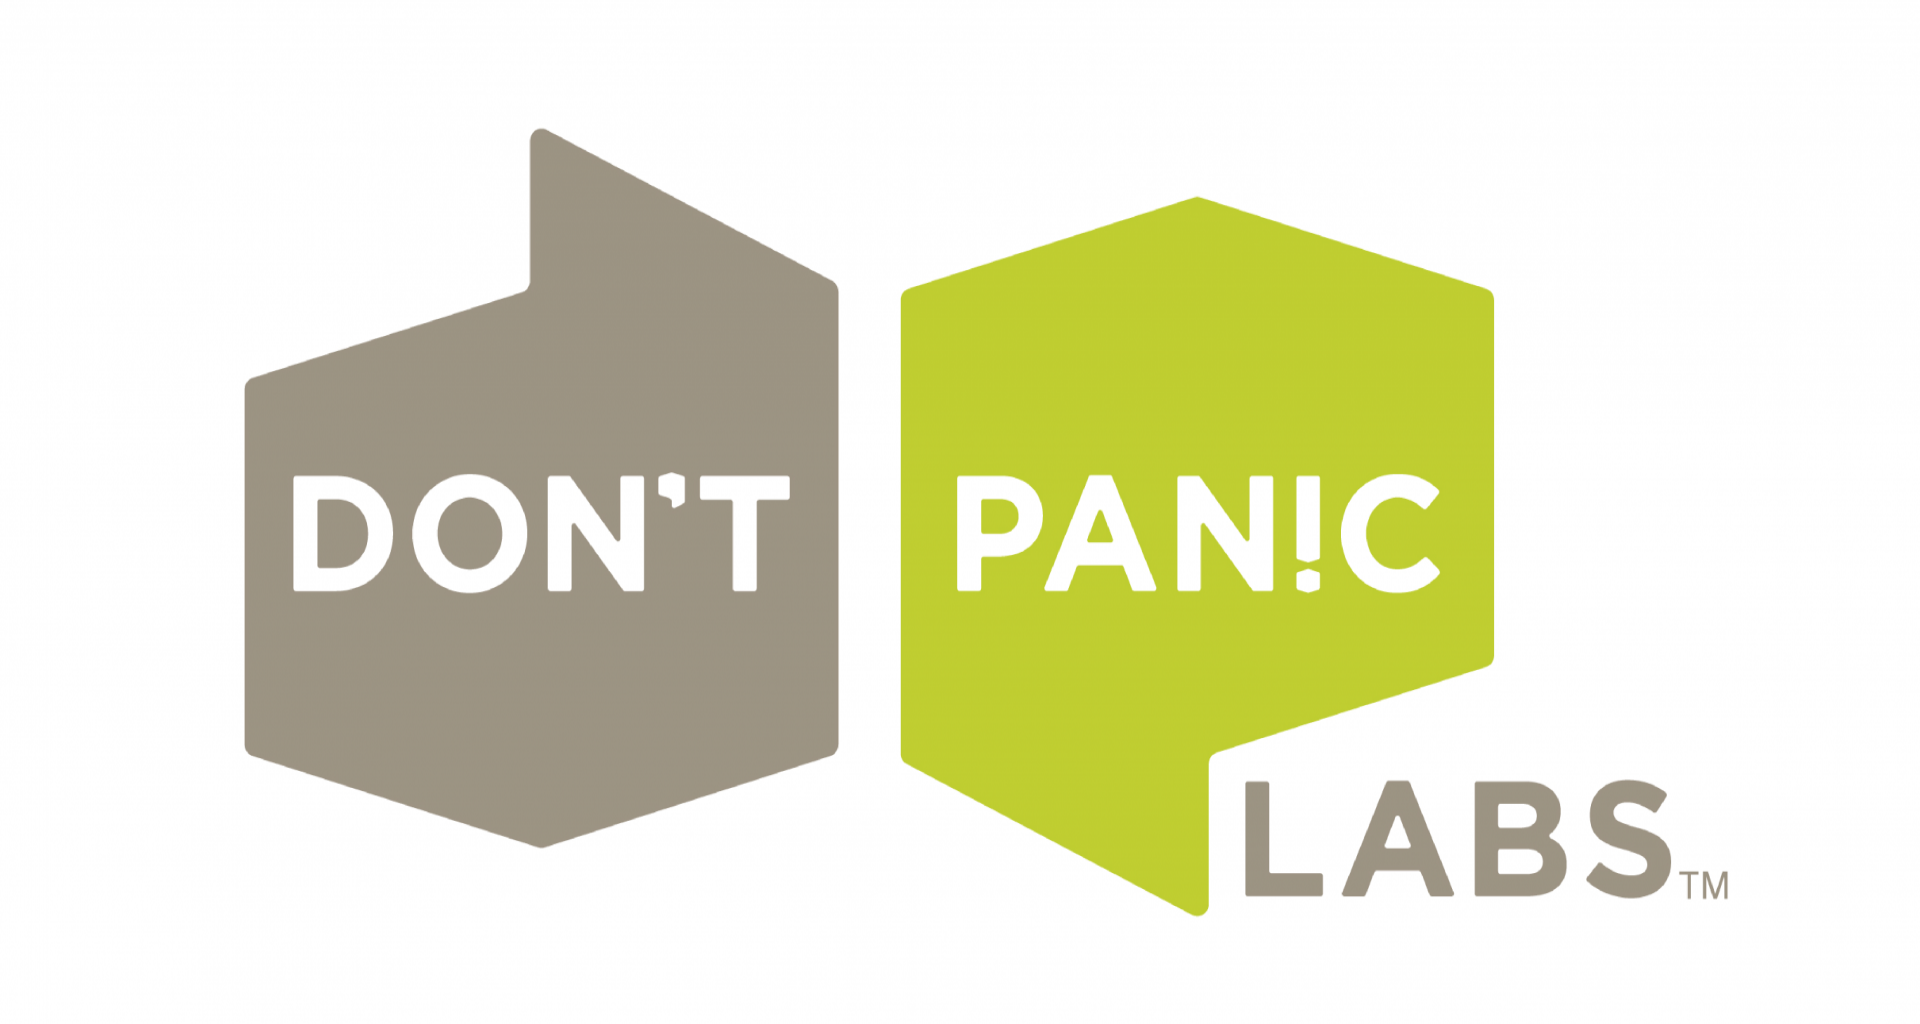 Don't Panic Labs logo